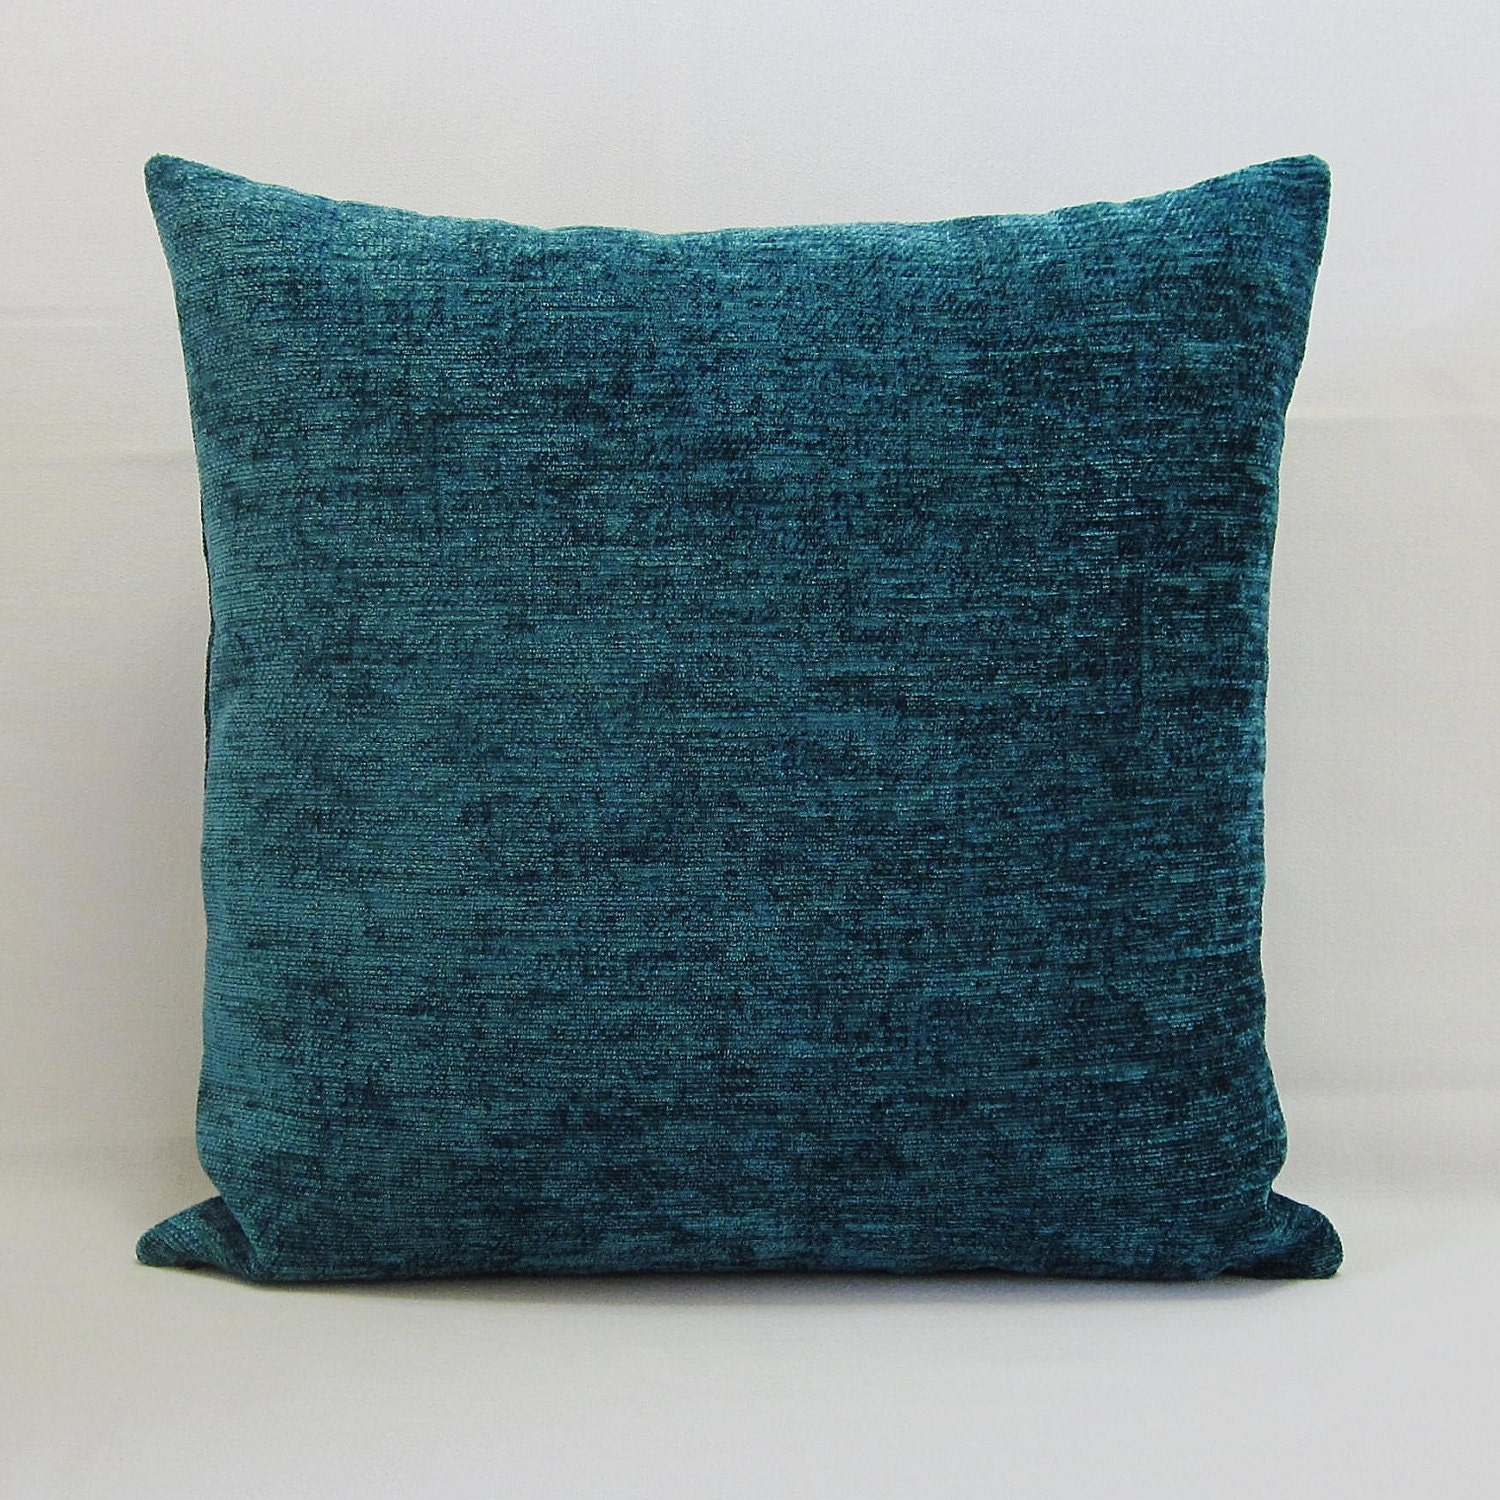 Teal Blue Throw Pillow : Teal Blue Throw Pillow Cover Decorative Accent Toss Couch